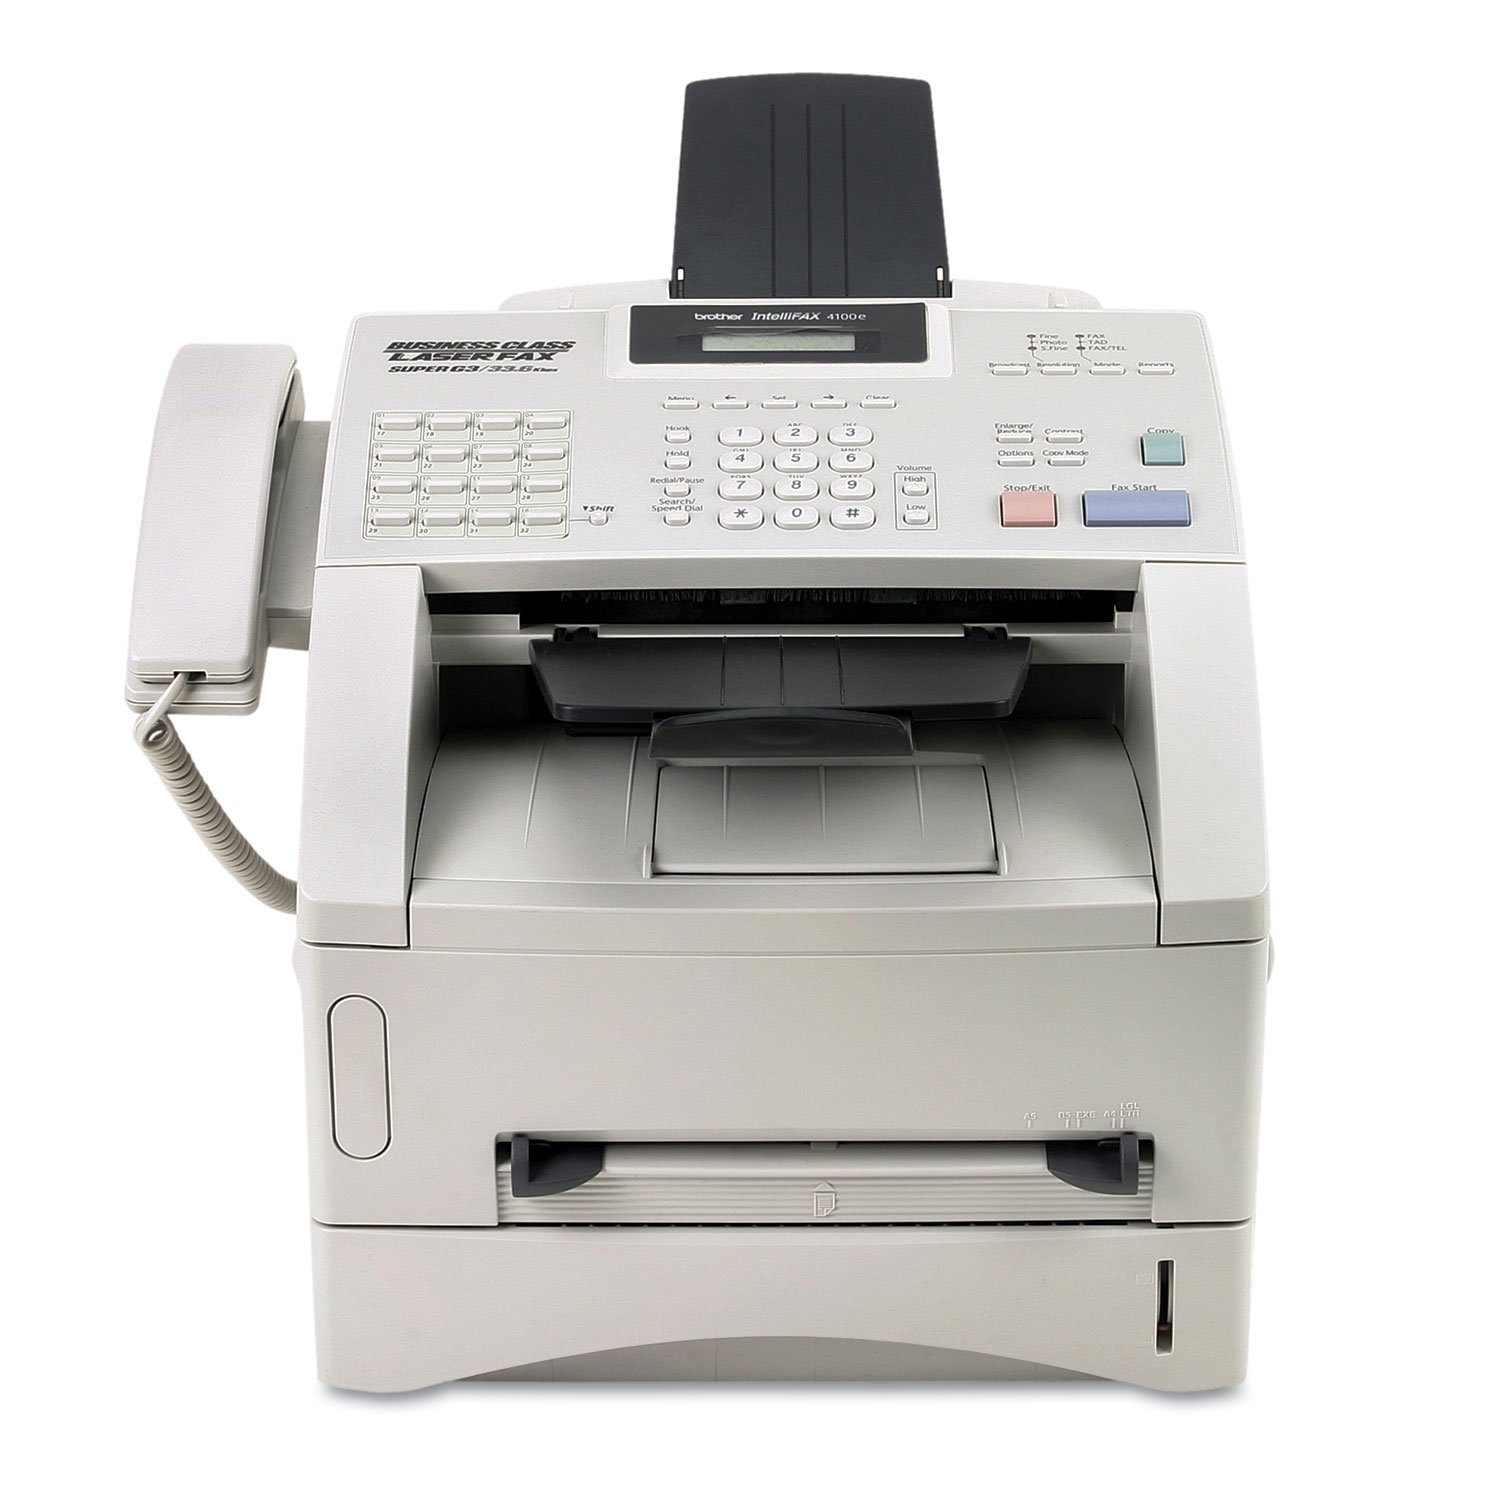 Amazon.com : Brother IntelliFax 4100E Business-Class Laser Fax ...